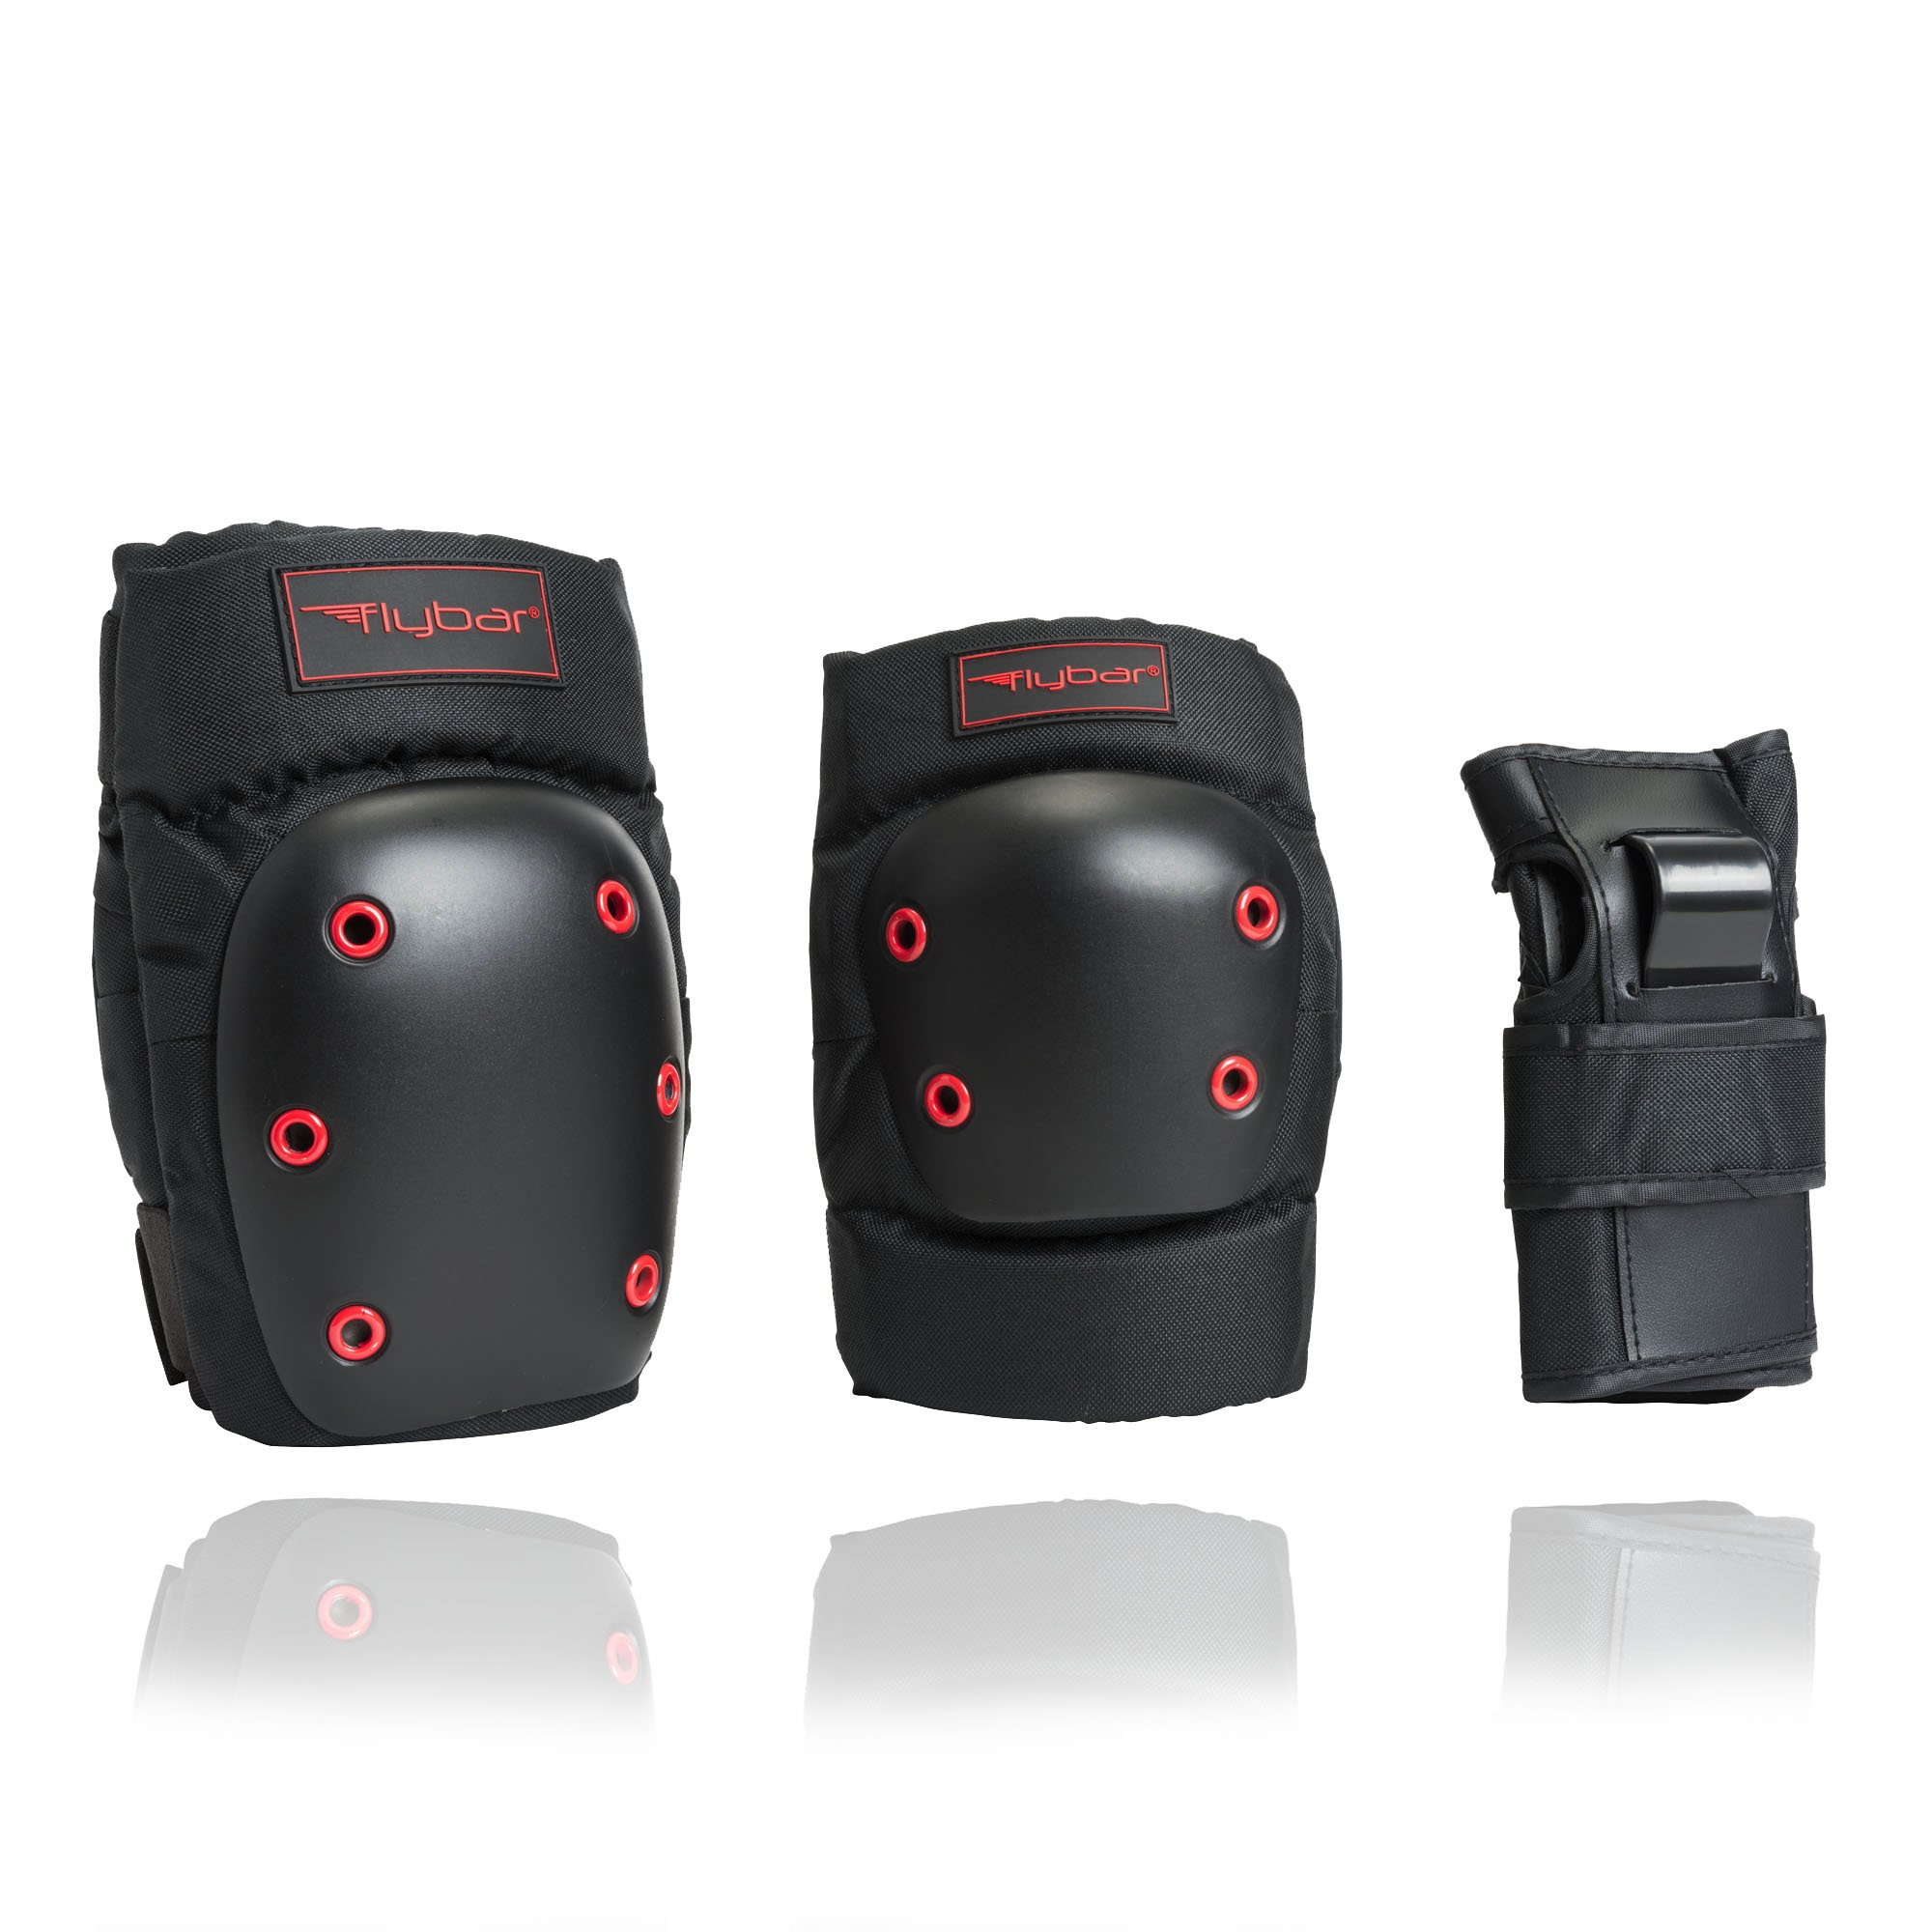 Flybar Knee Pads, Elbow Pads and Wrist Guards Protective Safety Gear Set - Multi Sport Protection For Skateboarding, BMX, Pogoing, Inline Skating, Scooter - Youth, Teen & Adult Sizes (X-Large)